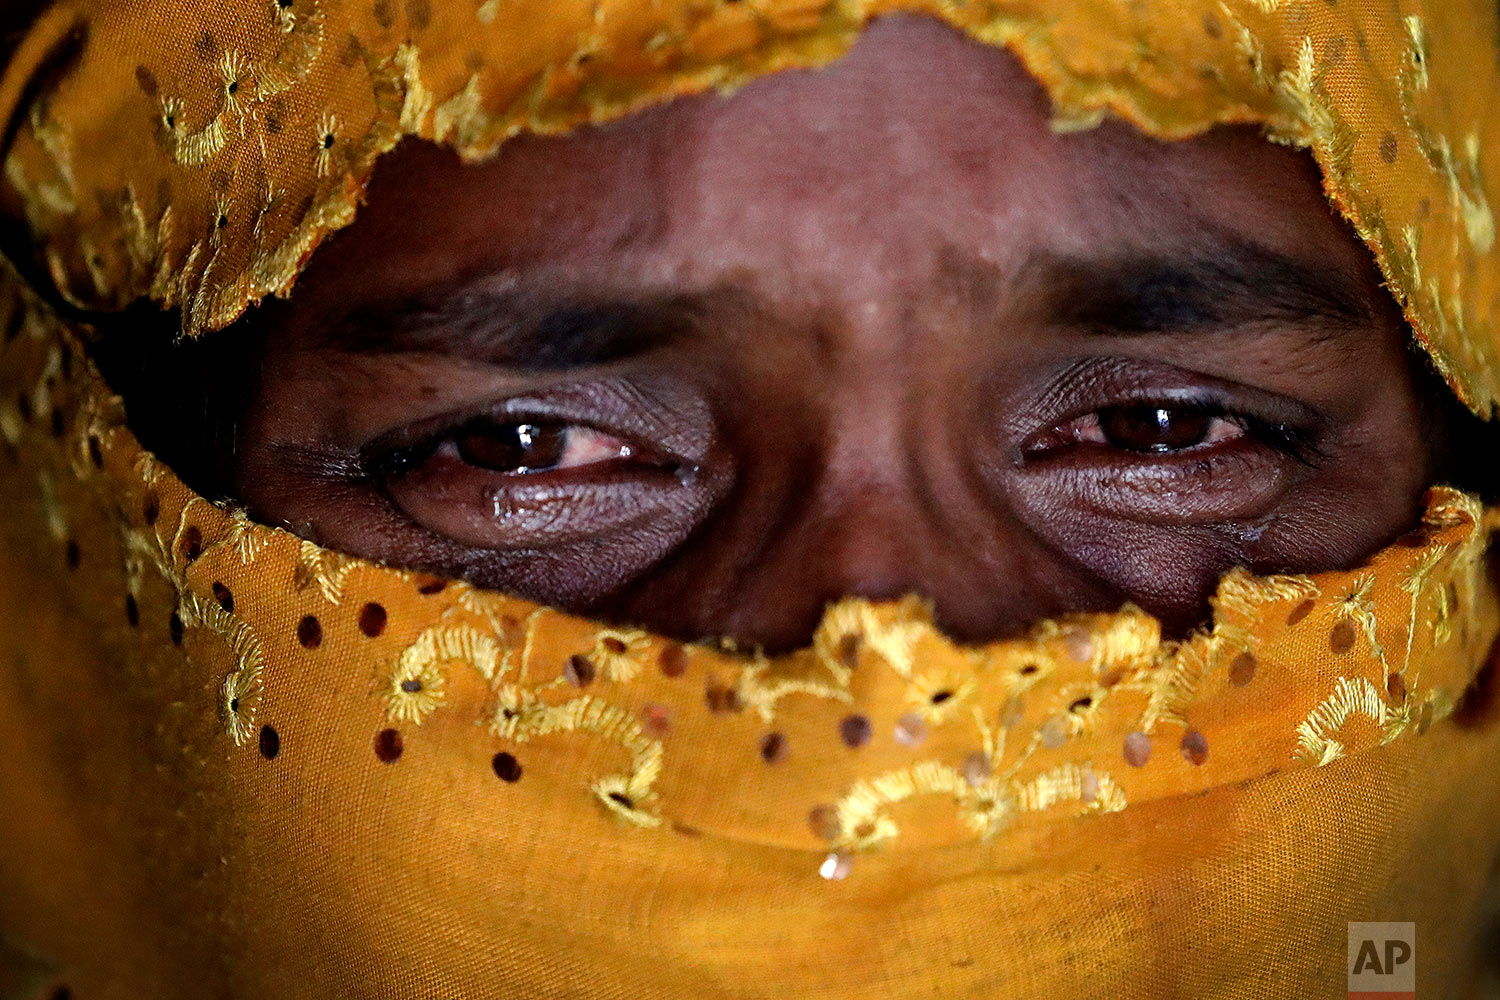 In this Tuesday, Nov. 21, 2017, photo, K, 25, right, cries as she recounts being gang raped by members of Myanmar's armed forces during an interview with The Associated Press in her tent in Kutupalong refugee camp in Bangladesh. (AP Photo/Wong Maye-E)